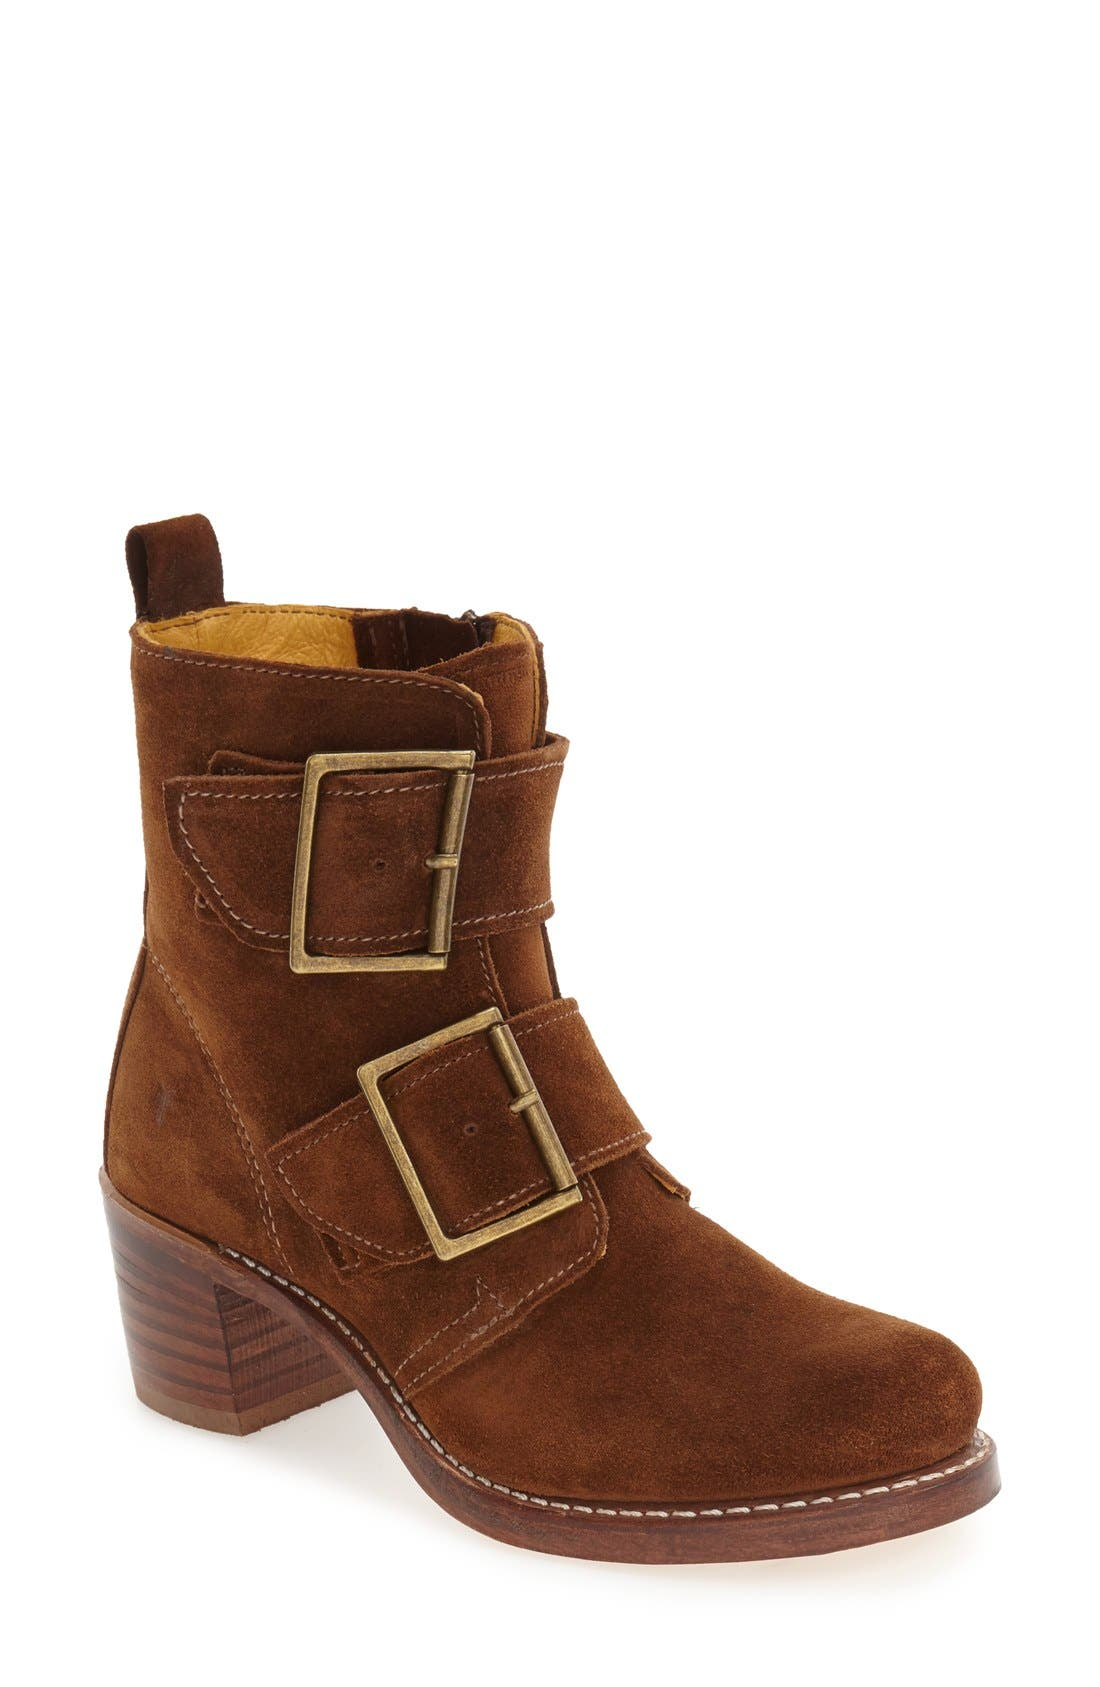 'Sabrina' Double Buckle Boot,                         Main,                         color, Wood Oiled Suede